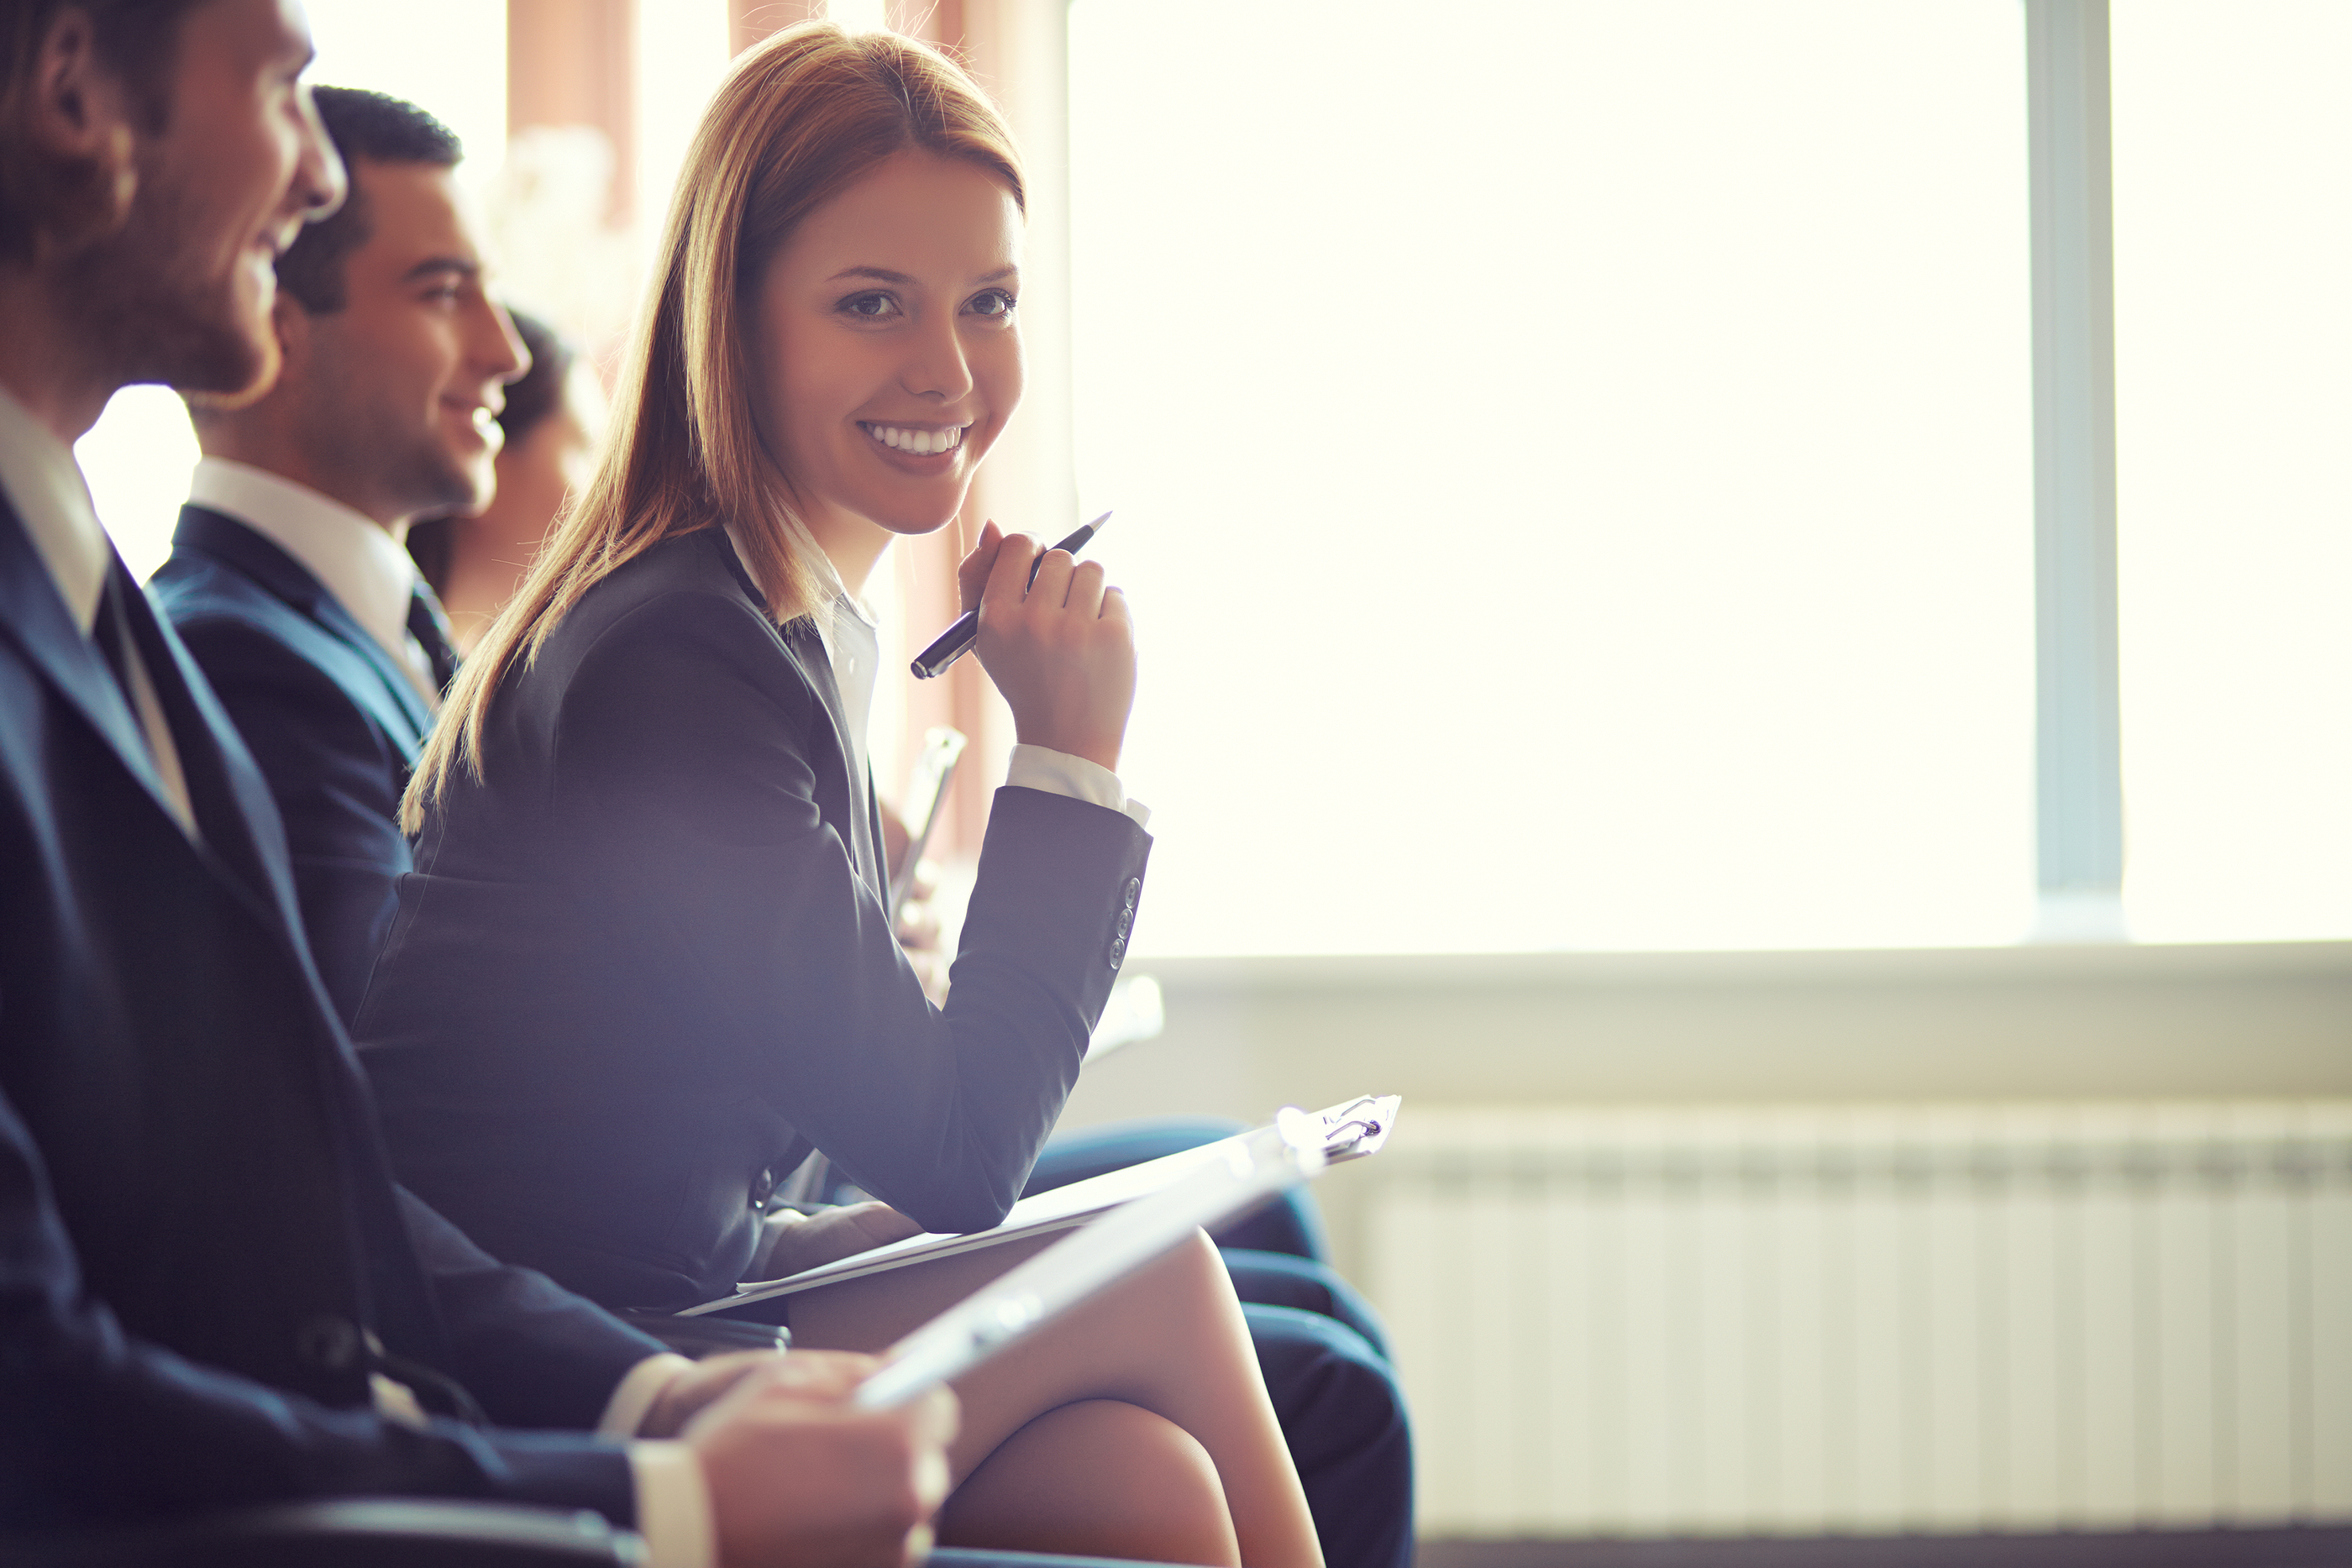 Row of business people sitting at seminar, focus on attentive young female.jpg